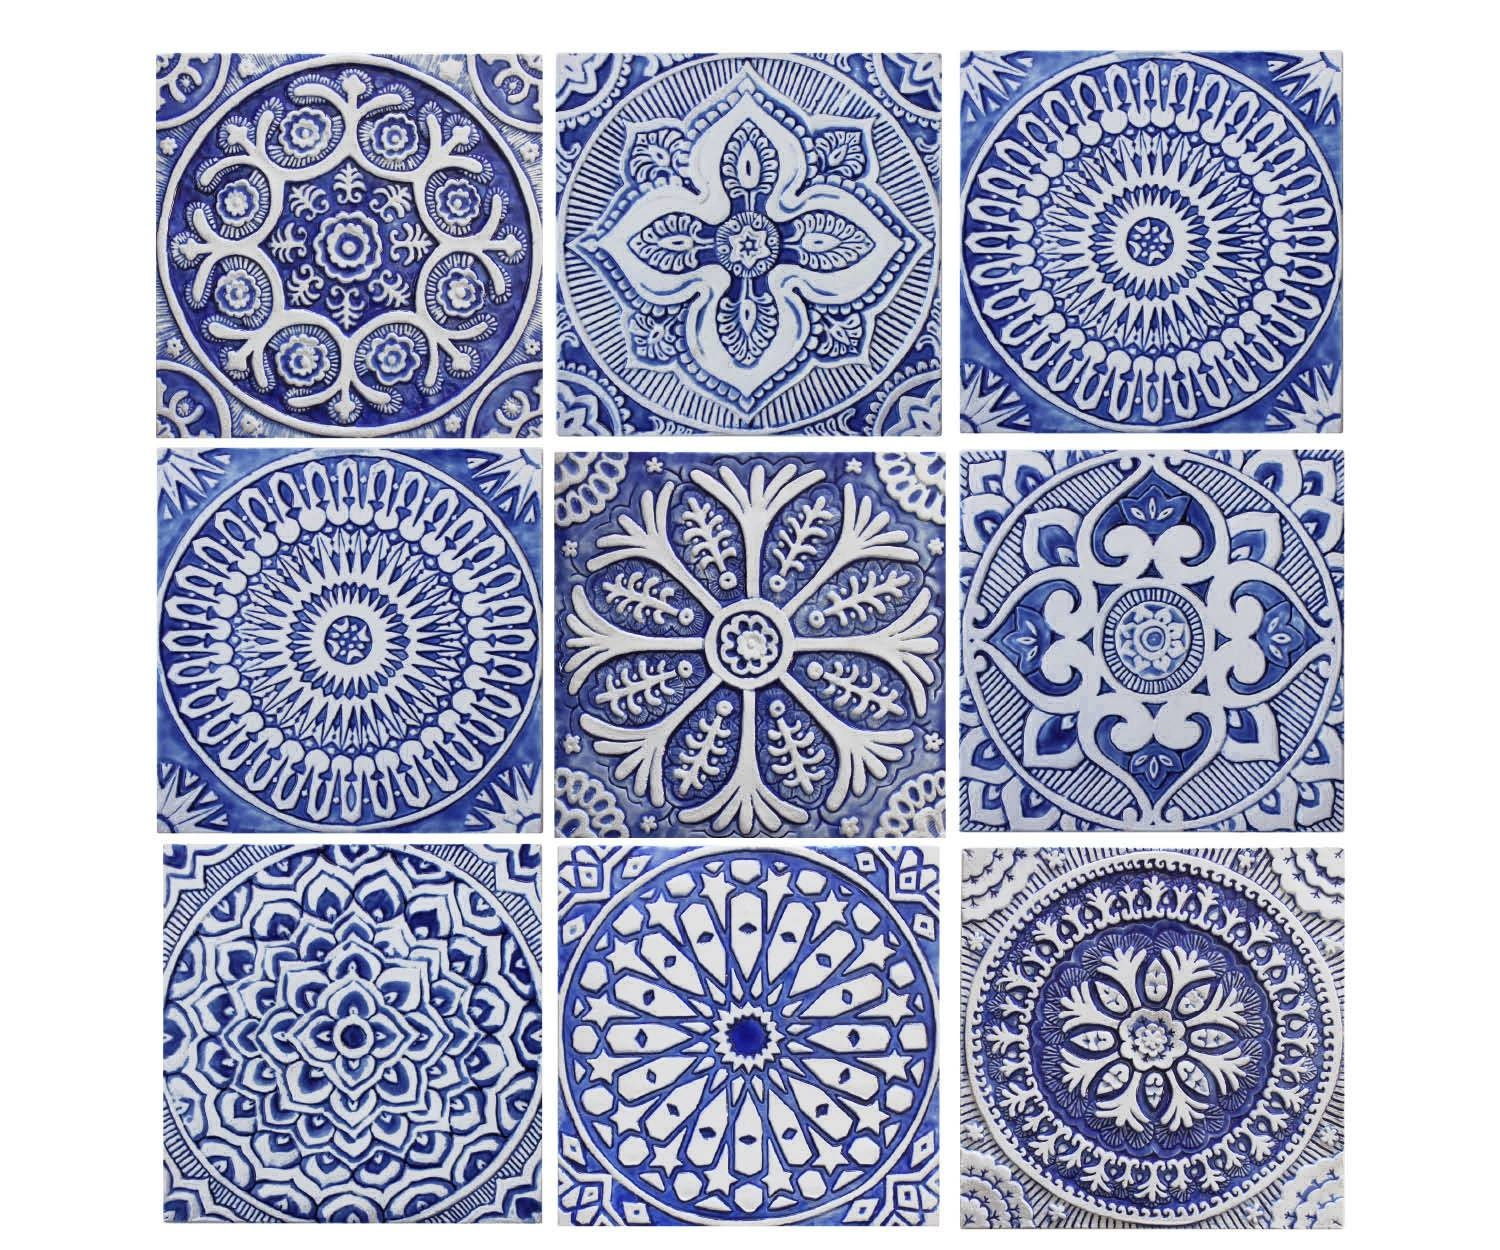 Outdoor Wall Art Set Of 9 Tiles Garden Decor Ceramic Tiles For Most Recent Ceramic Tile Wall Art (Gallery 12 of 20)